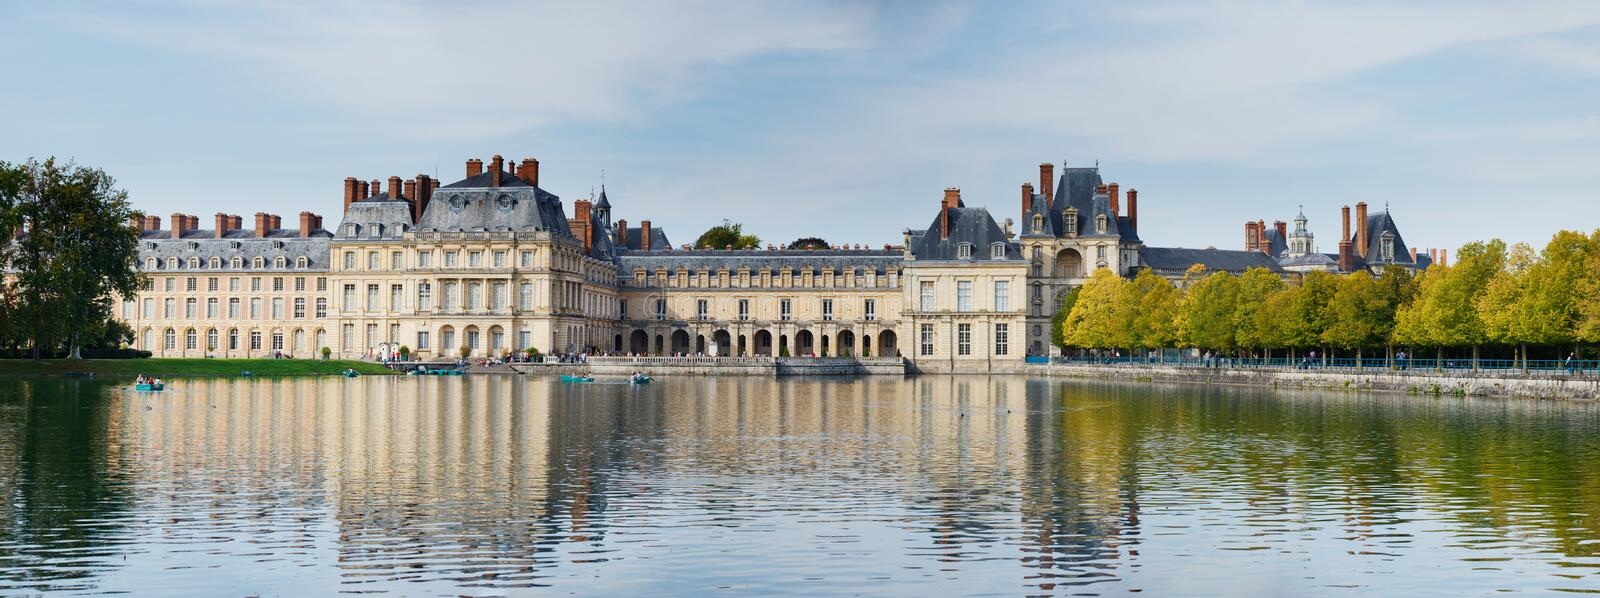 Palace And Pond In Fontainebleau. Panorama Old palace and pond in Fontainebleau France stock photography